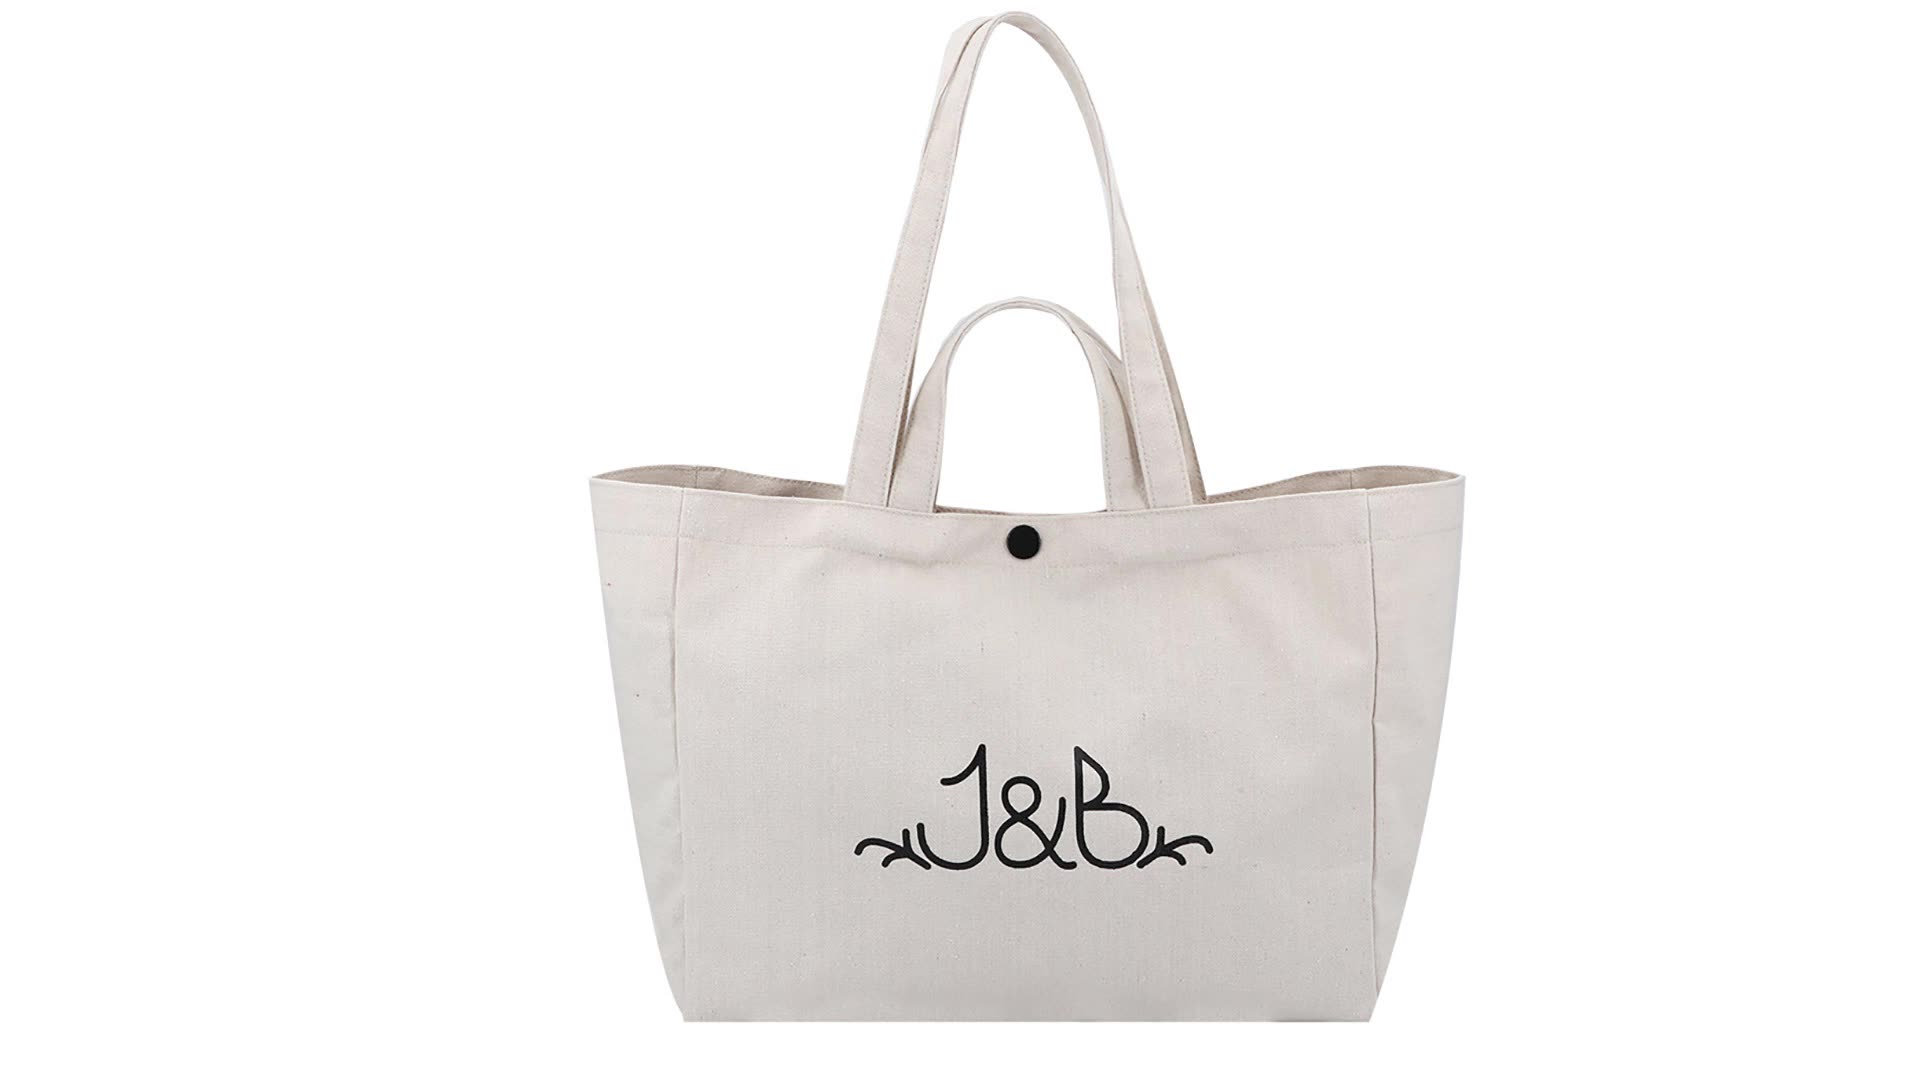 Eco Friendly Reusable Shopping Bag Two Handles Natural Cotton Grocery Bag Large Canvas Tote Bag for Promotional Gift